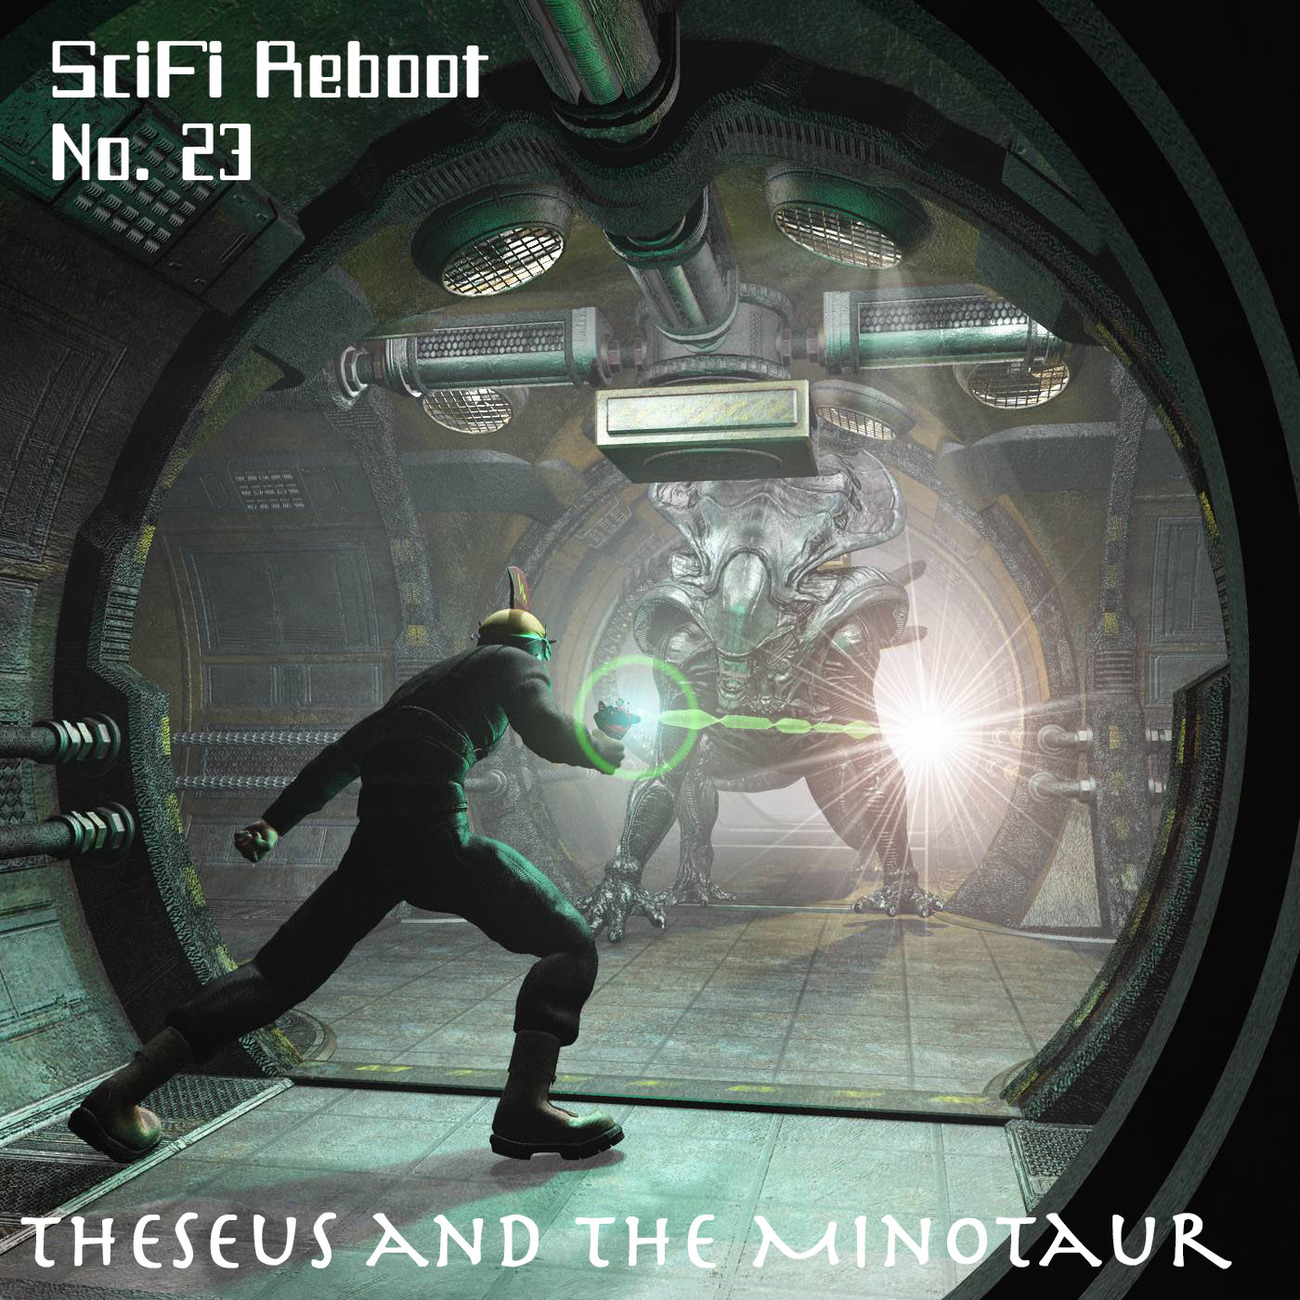 SciFi Reboot No. 23: Theseus and the Minotaur by rps53